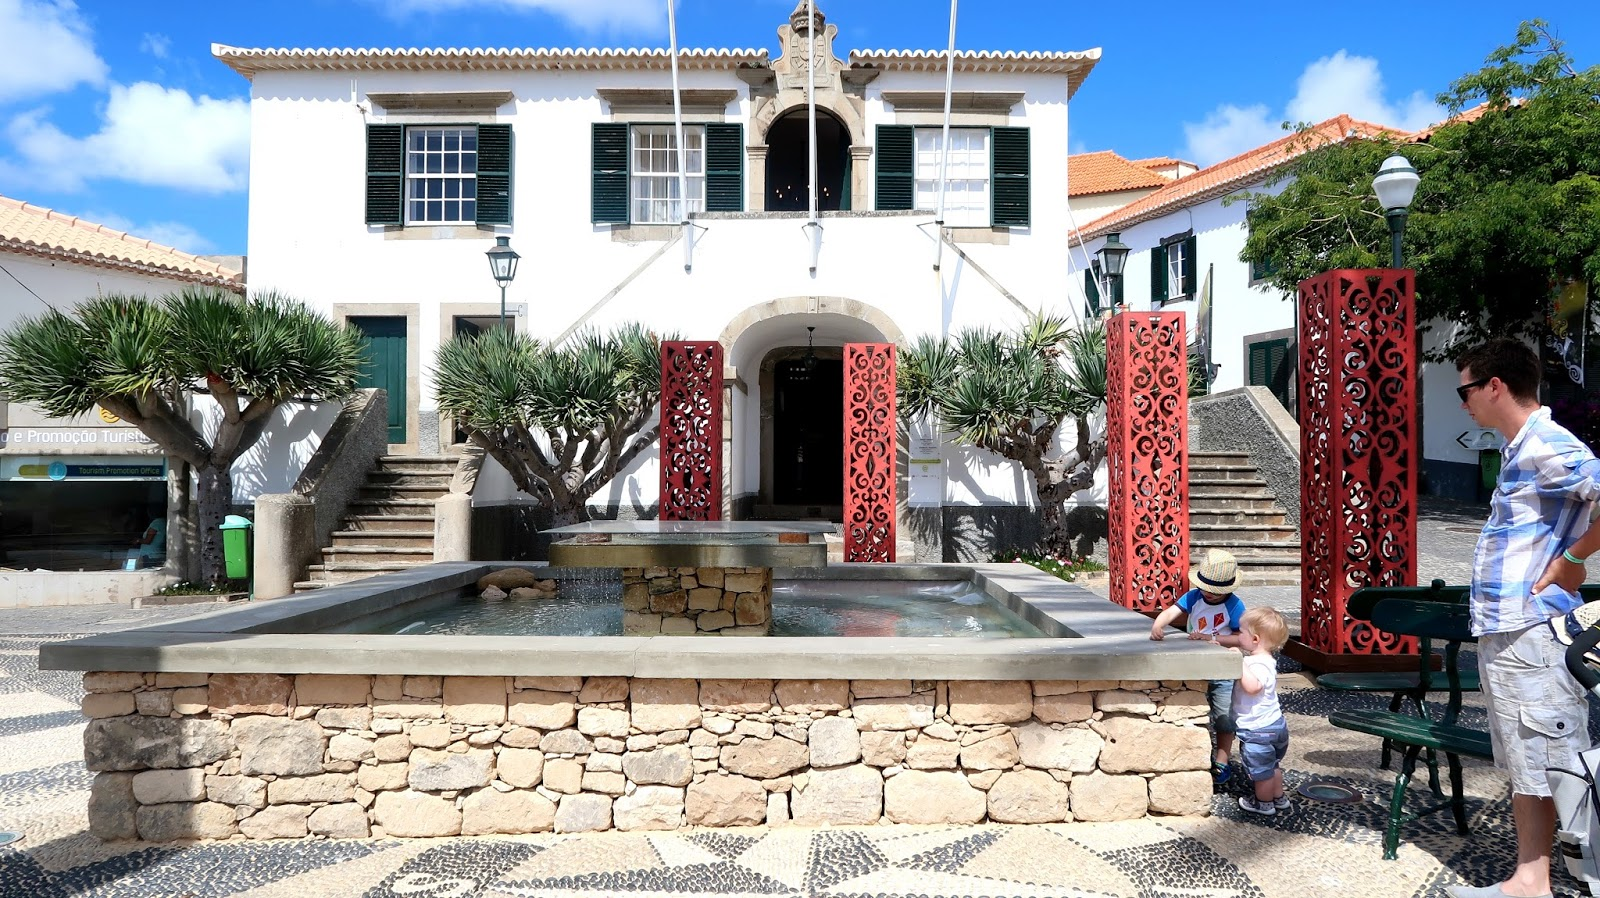 vila do porto big and beautiful singles Winner of multiple british travel awards, destinology are expert providers of luxury tailor-made holidays and honeymoon packages to exotic destinations worldwide.